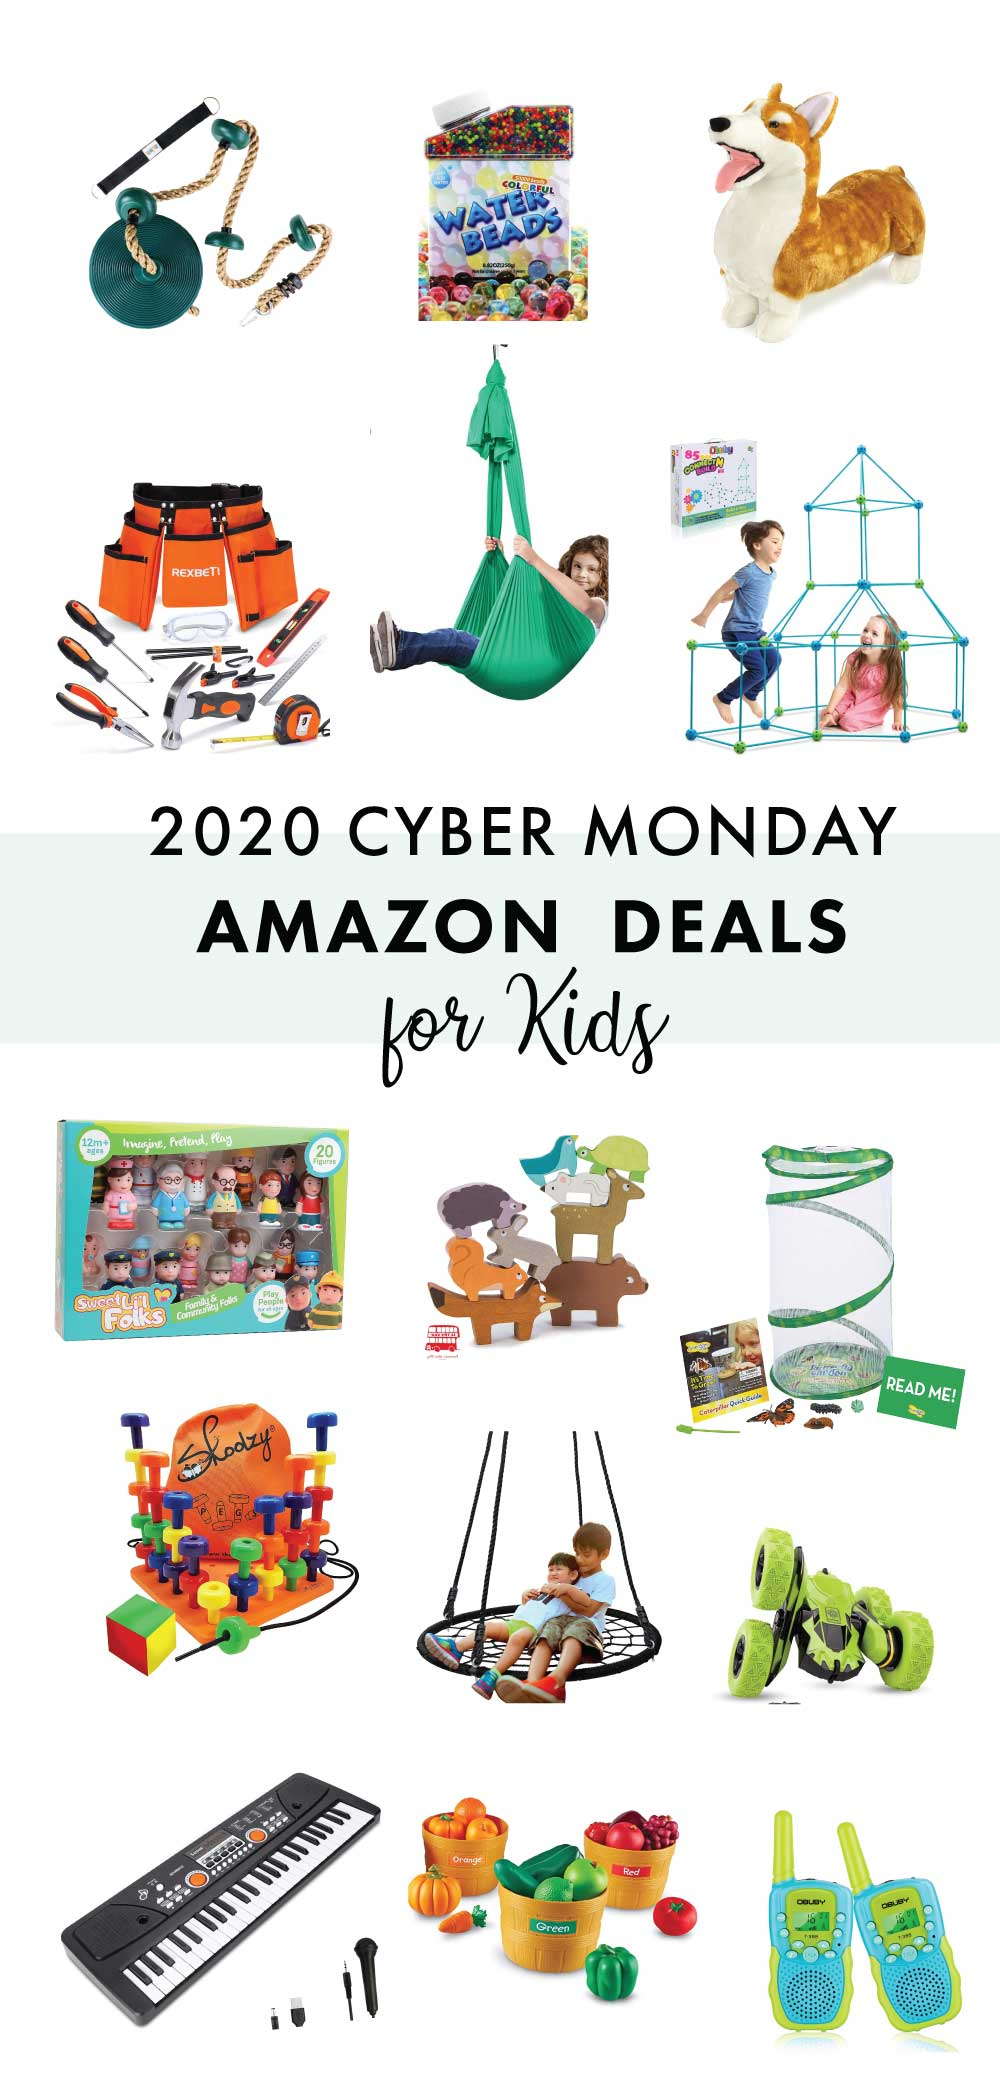 Amazon Cyber Monday Deals for kids 2020